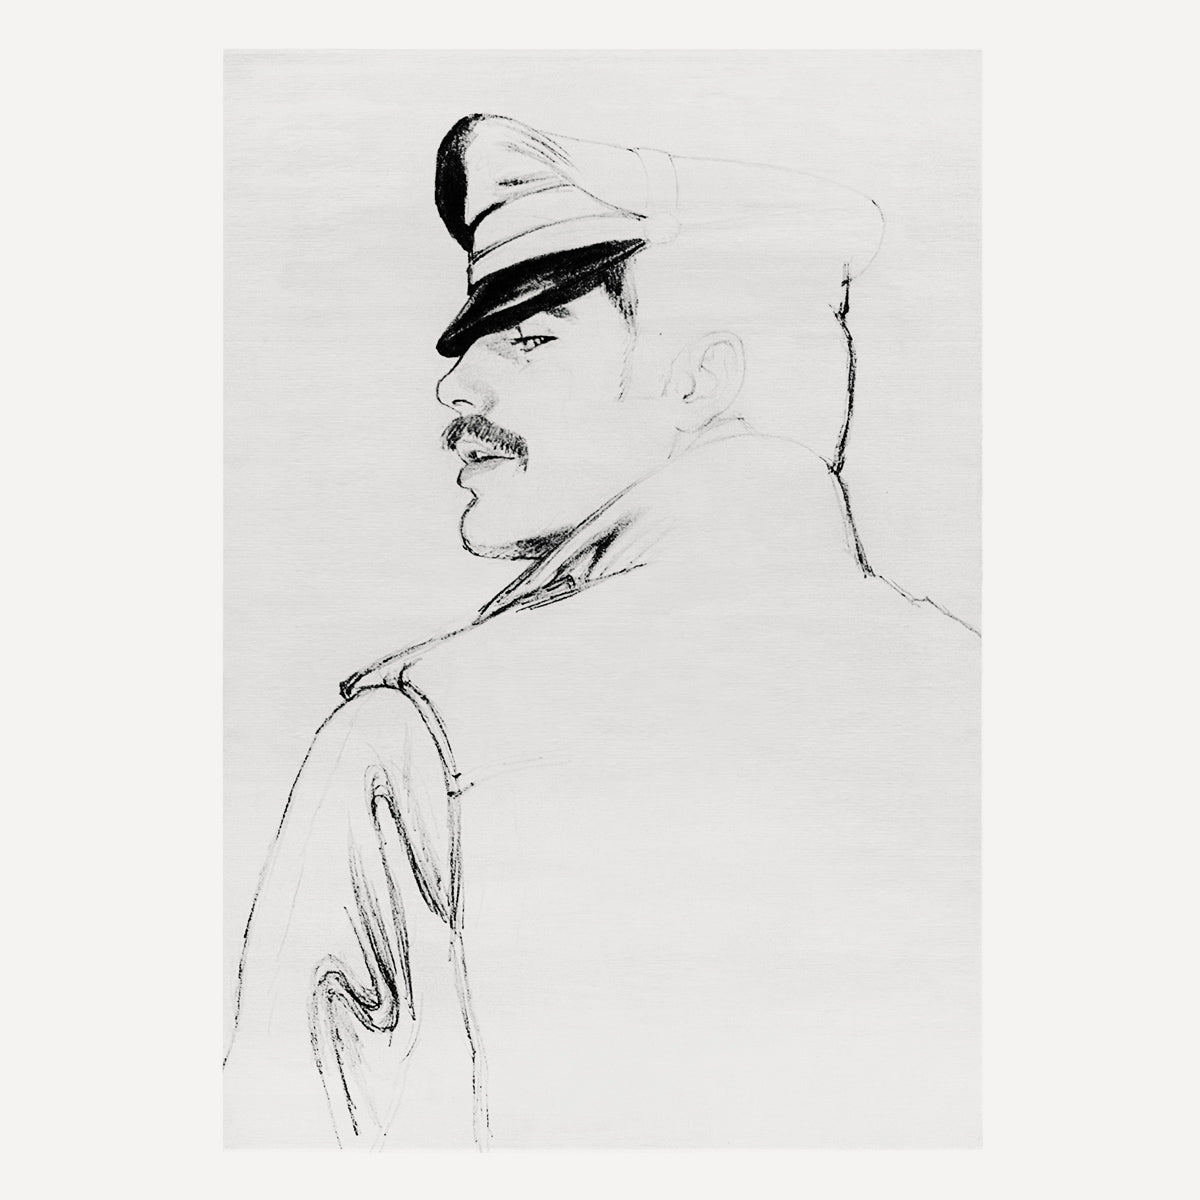 TOM OF FINLAND, UNTITLED, 1977 (1045)